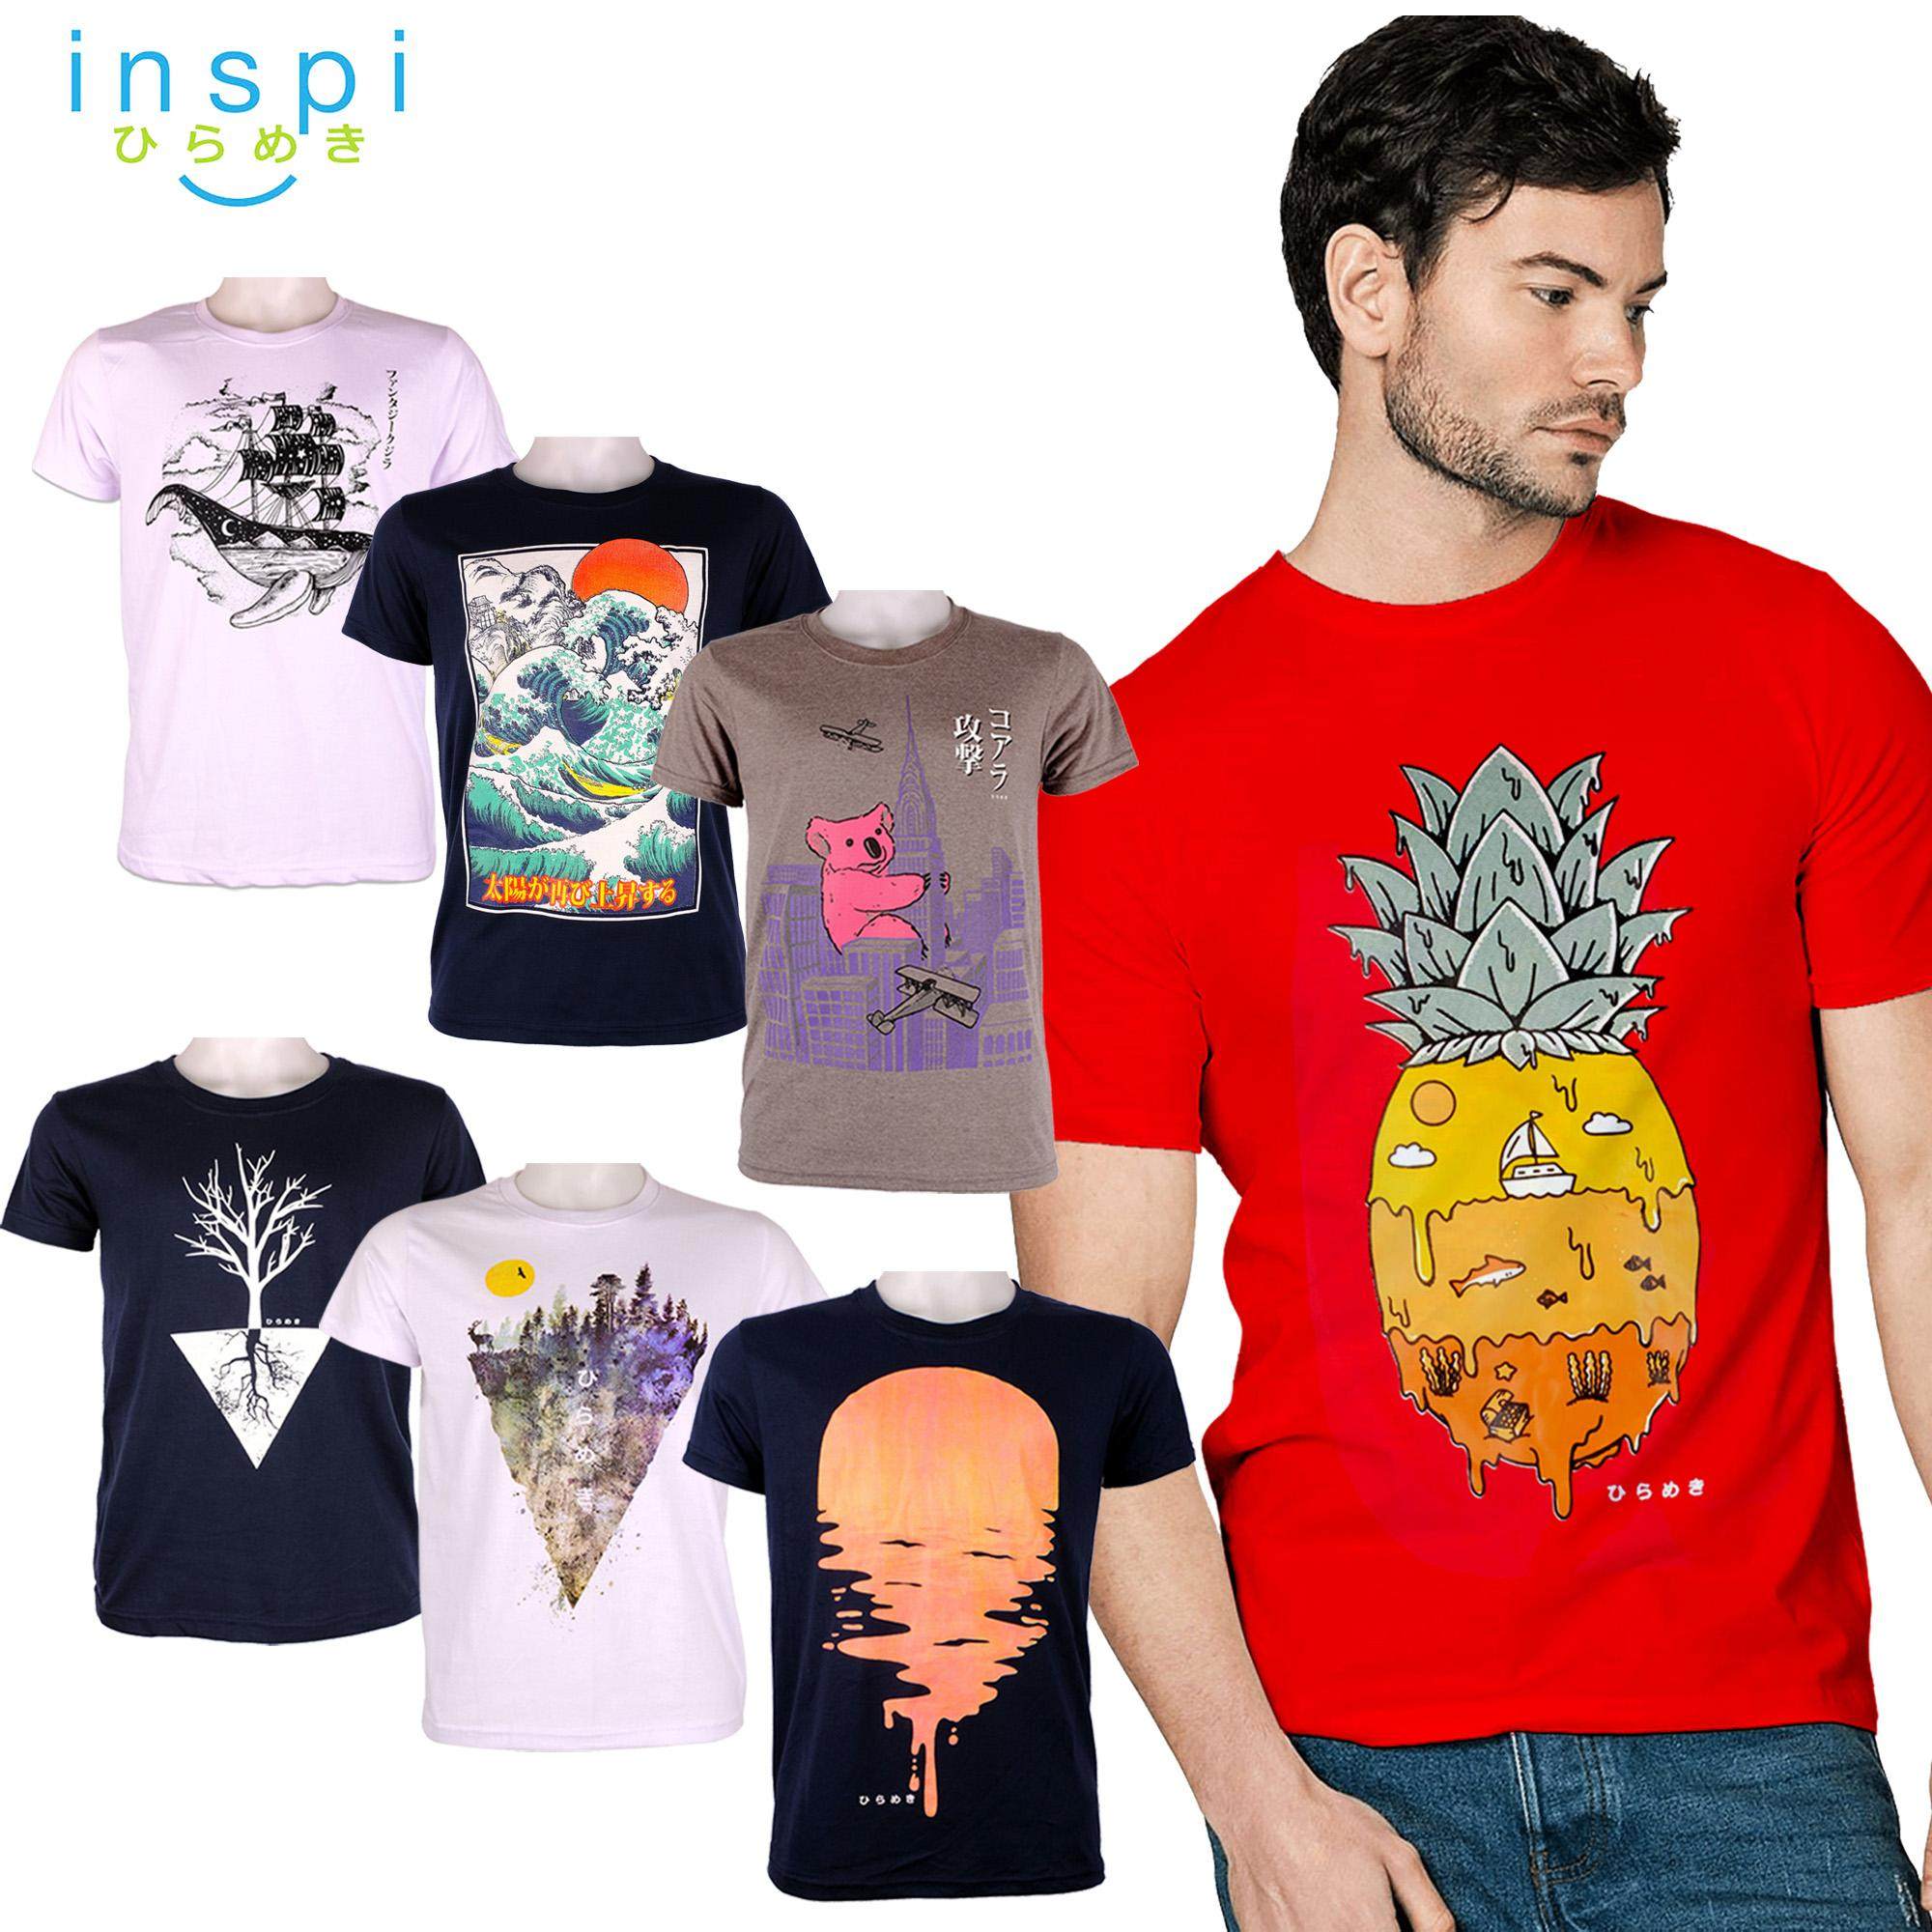 1b06c971cb3 INSPI Tees Nature Collection tshirt printed graphic tee Mens t shirt shirts  for men tshirts sale